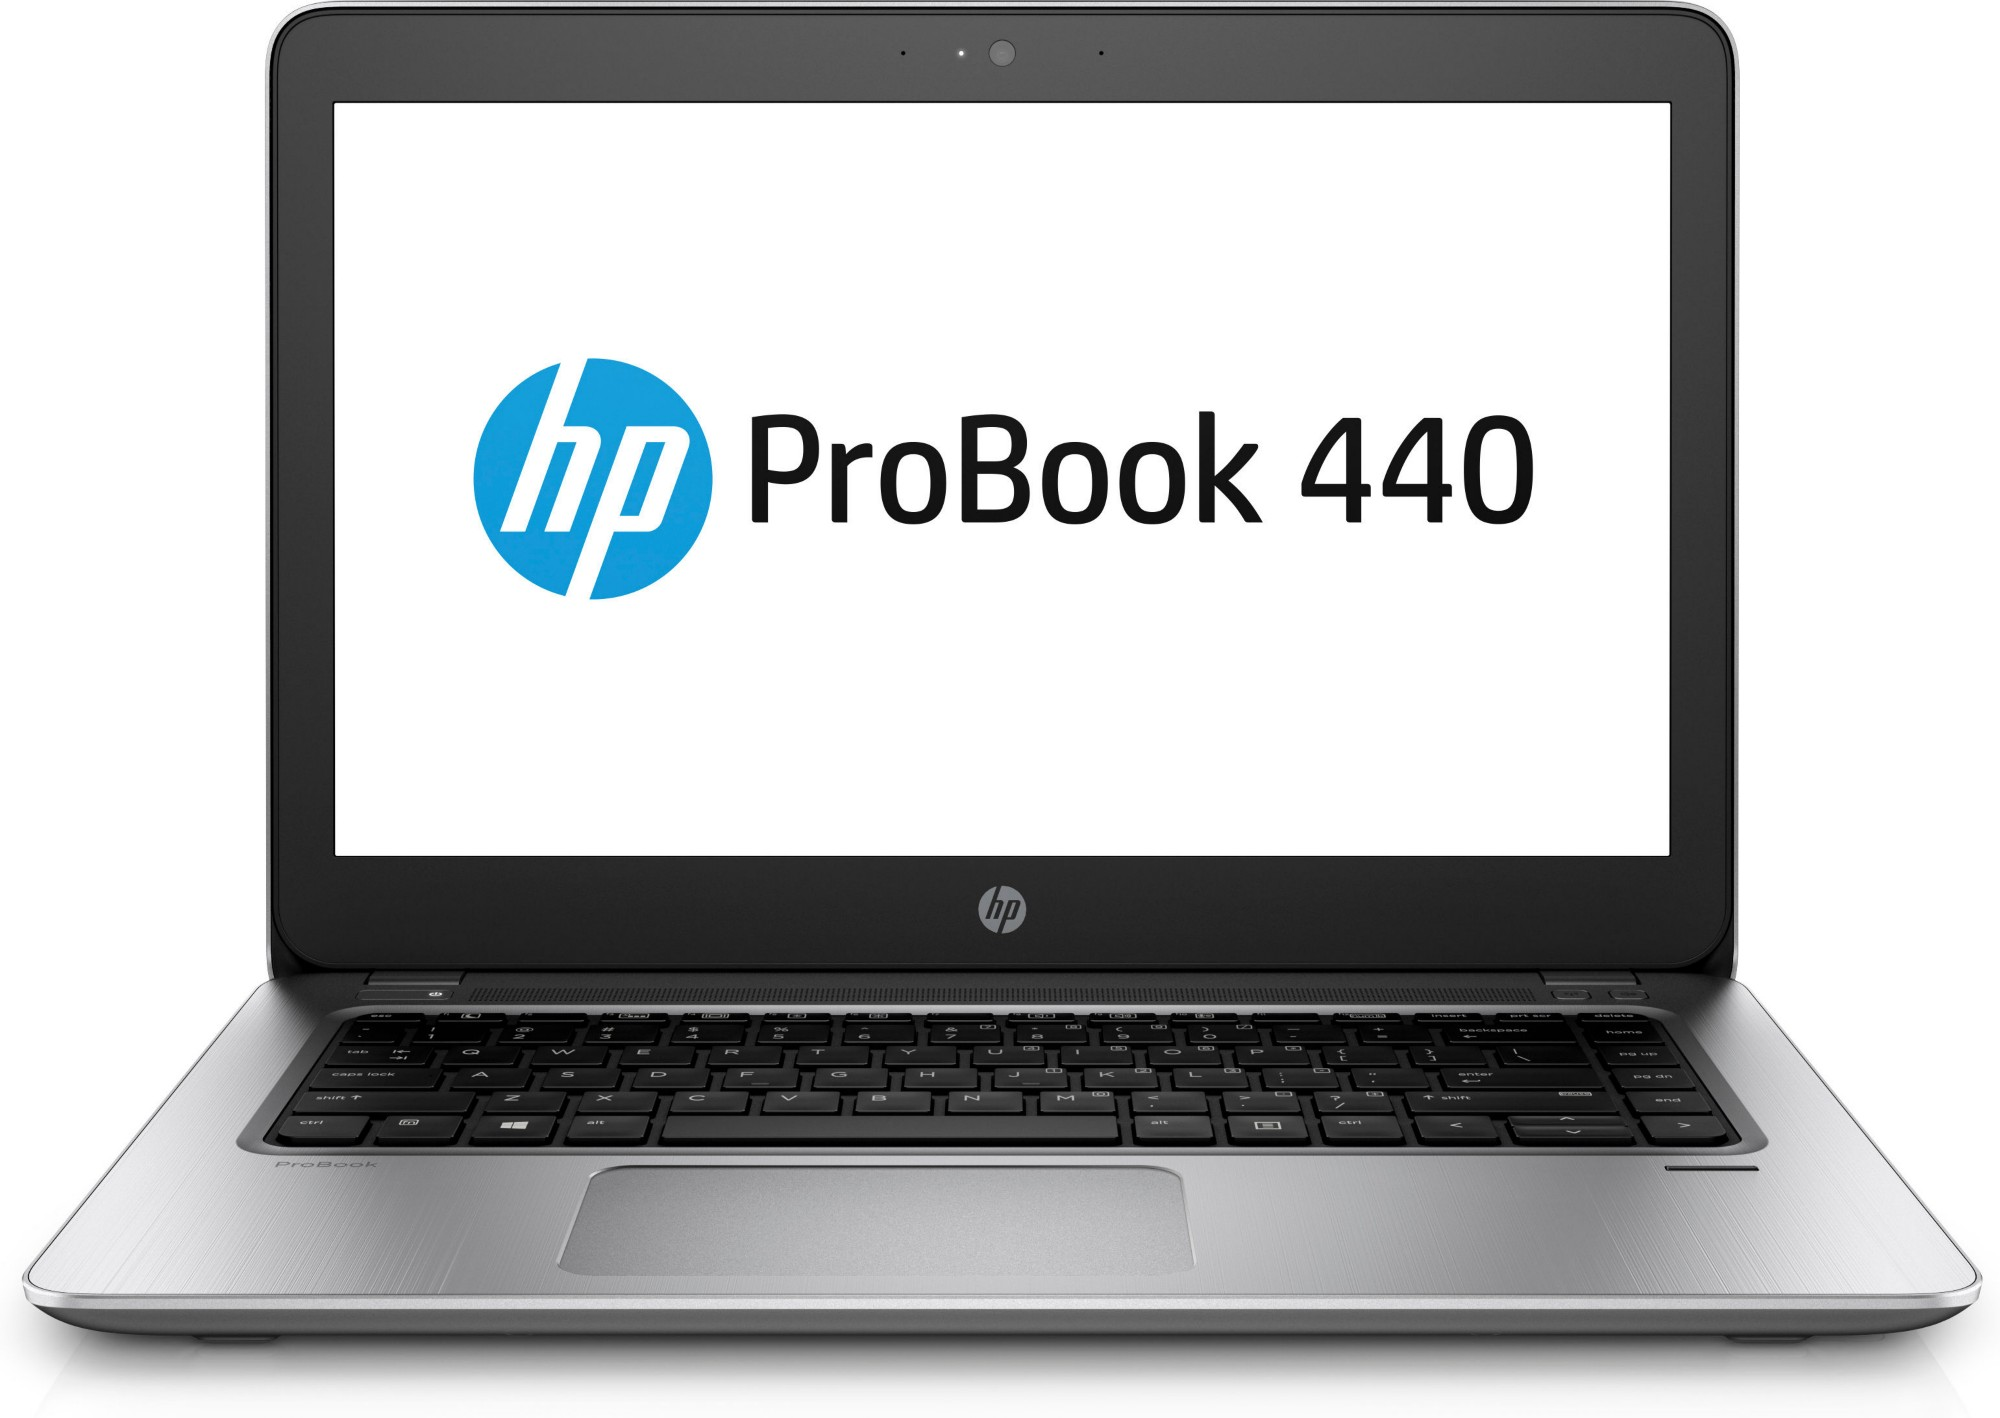 HP ProBook 440 G4 Notebook PC